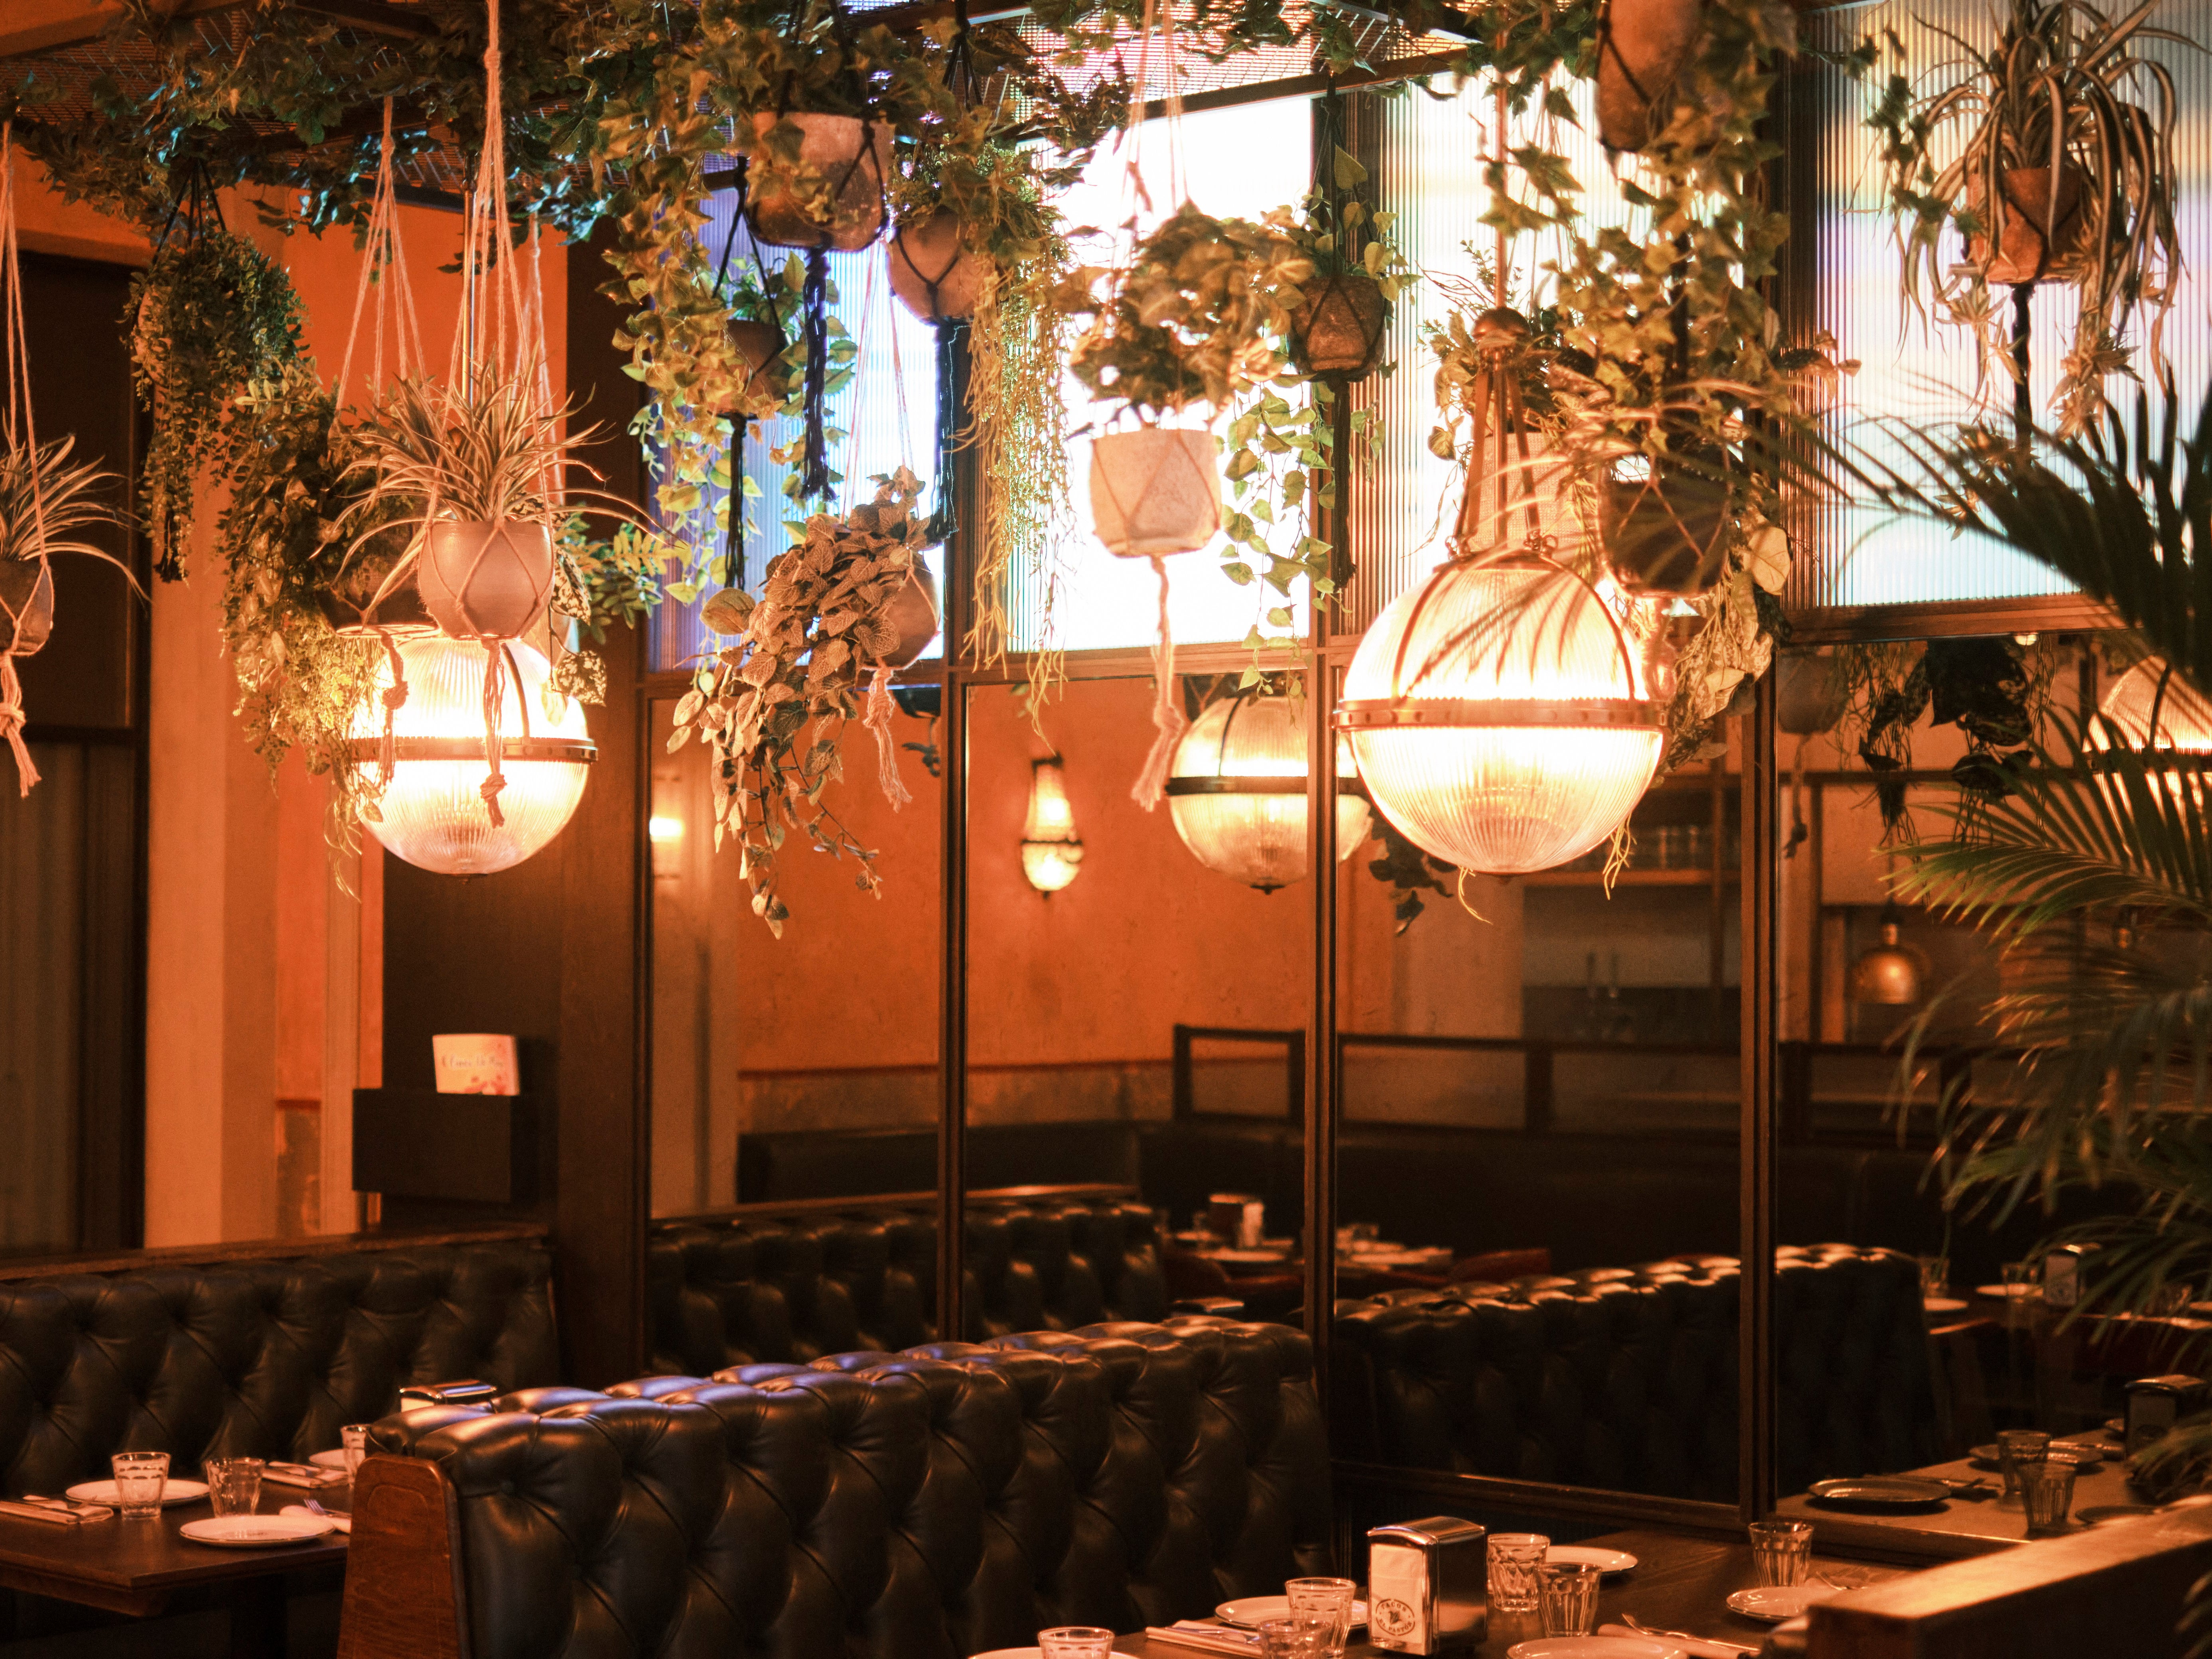 independent.co.uk - Jo Aspin - Five new restaurant openings to make you feel like you're abroad this summer